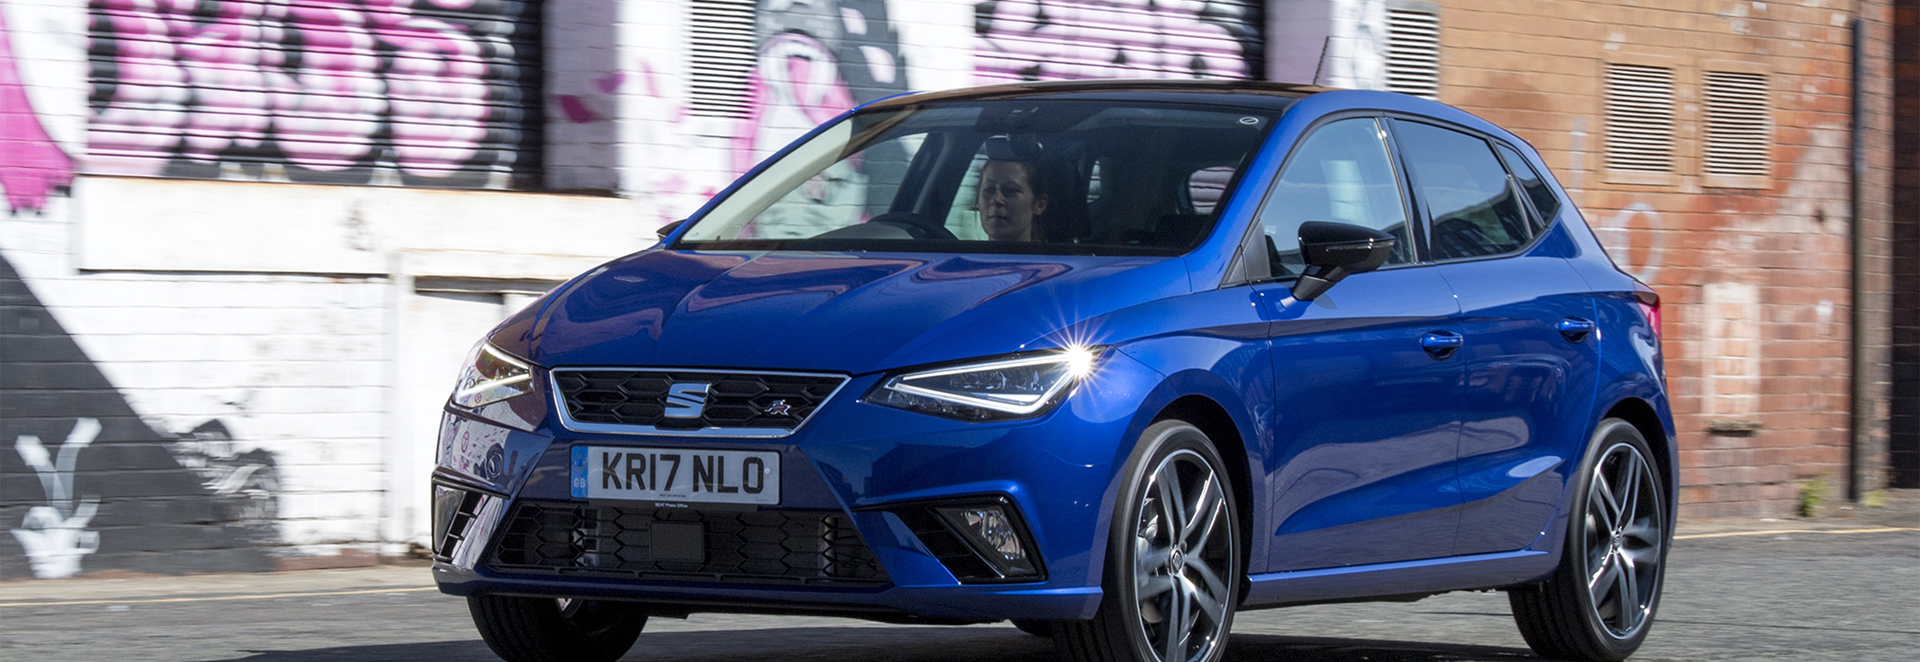 SEAT Ibiza FR 1.0 TSI 115PS 2017 Hatchback Review